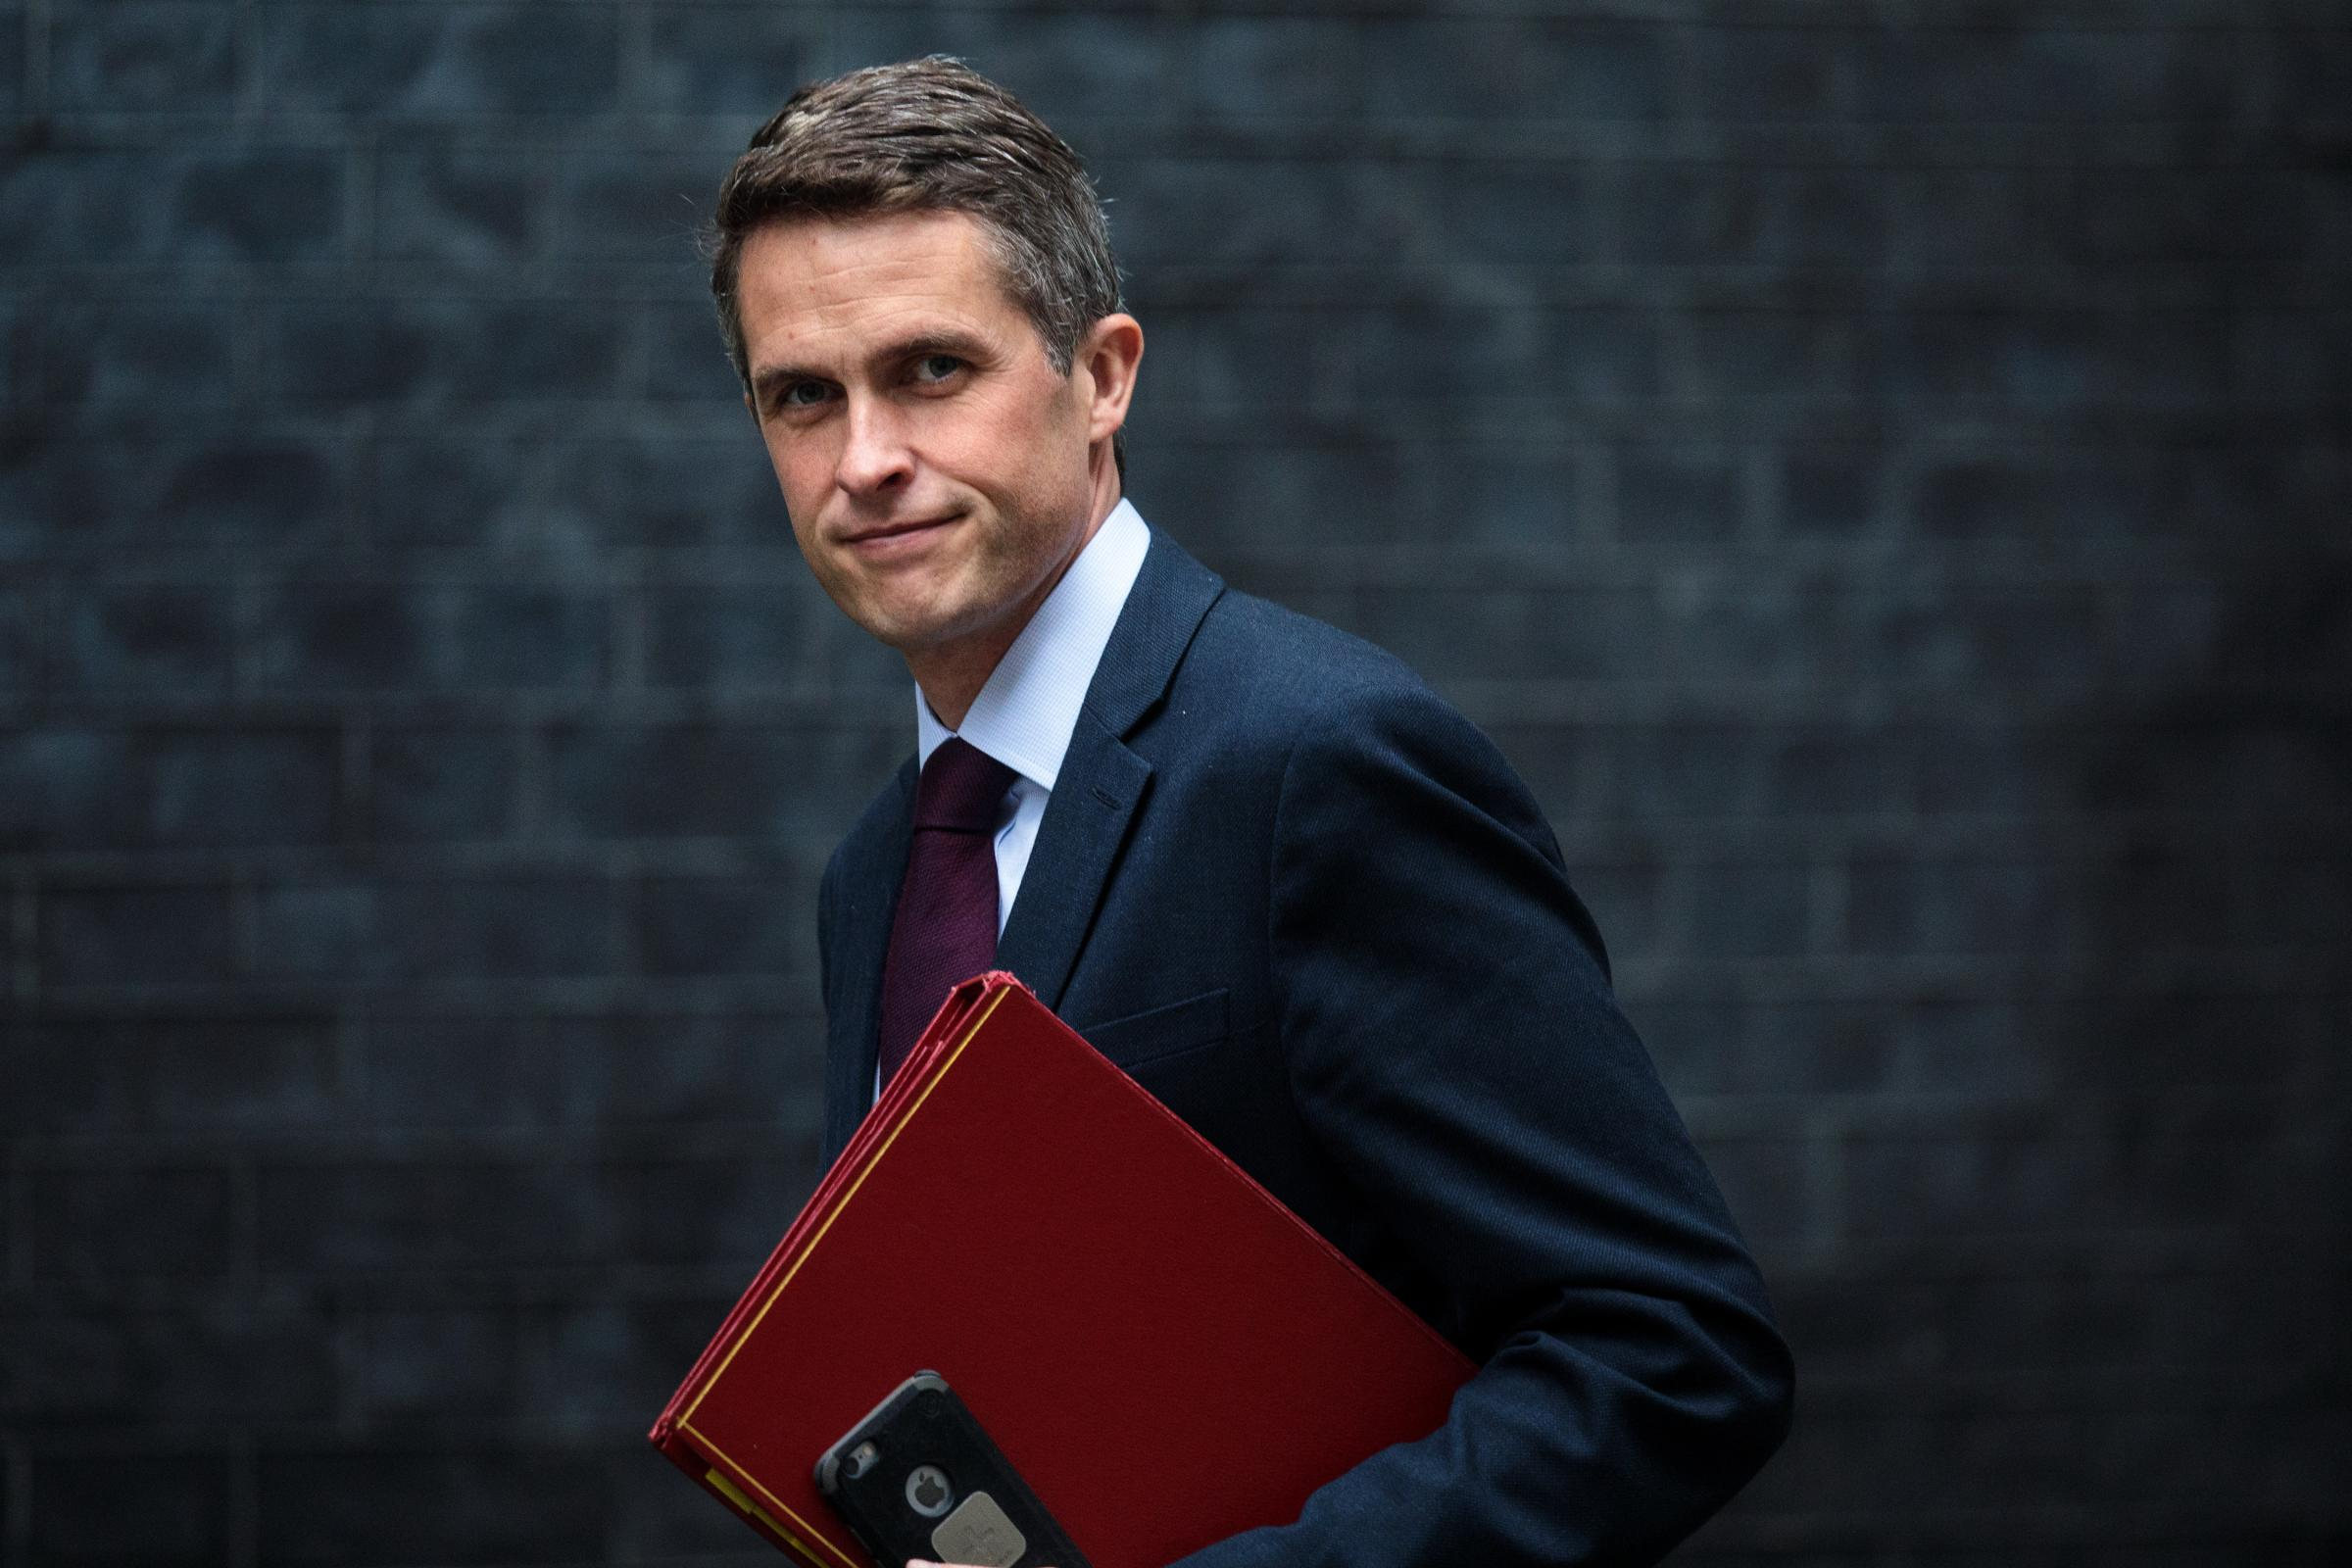 Former defence secretary Gavin Williamson lambasted Theresa May ahead of key talks with the opposition